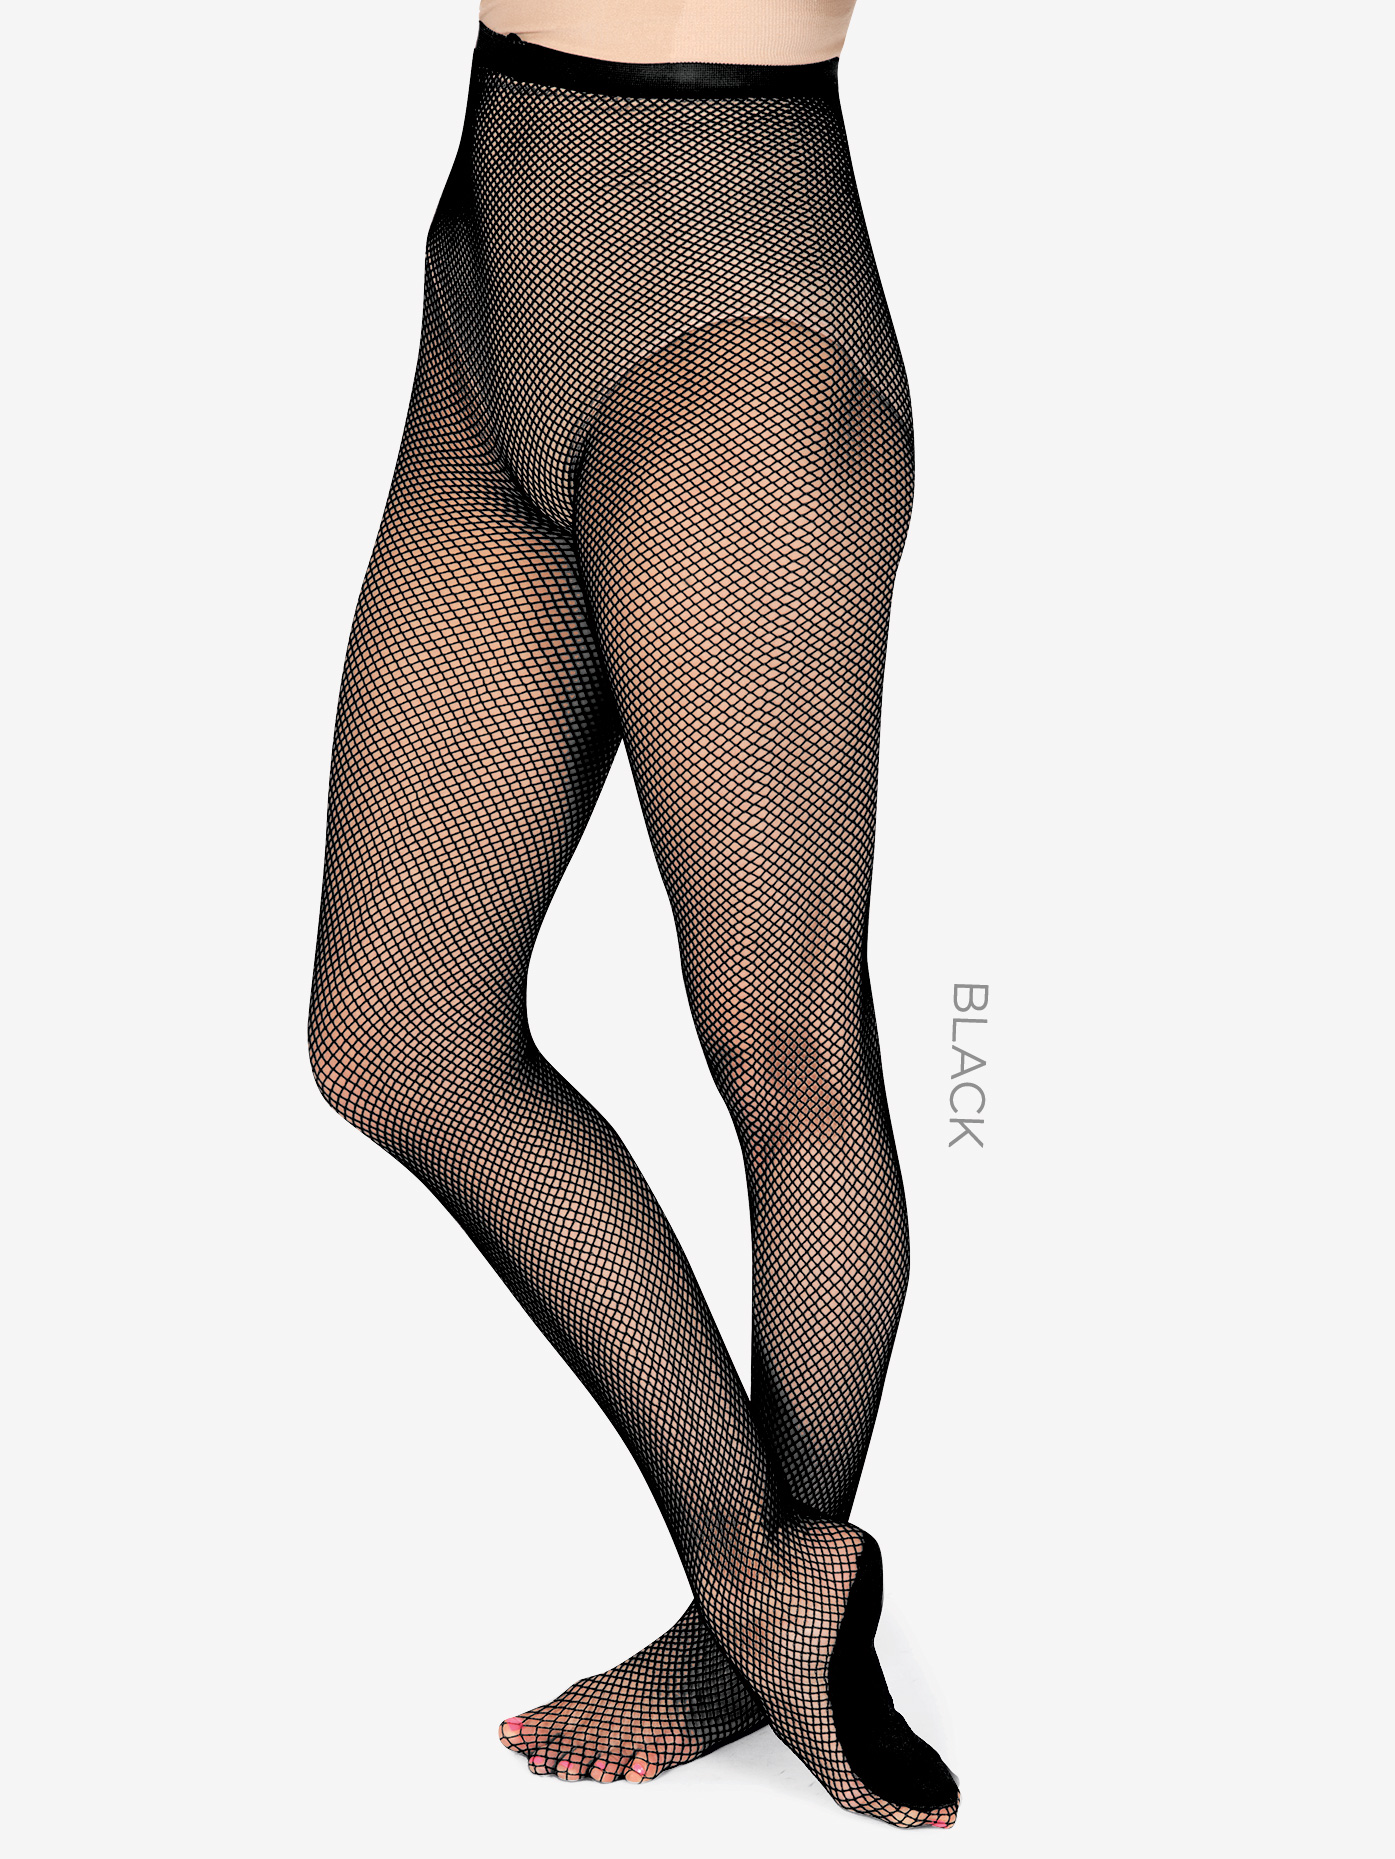 Theatricals Adult Professional Footed Fishnet Tights T6000